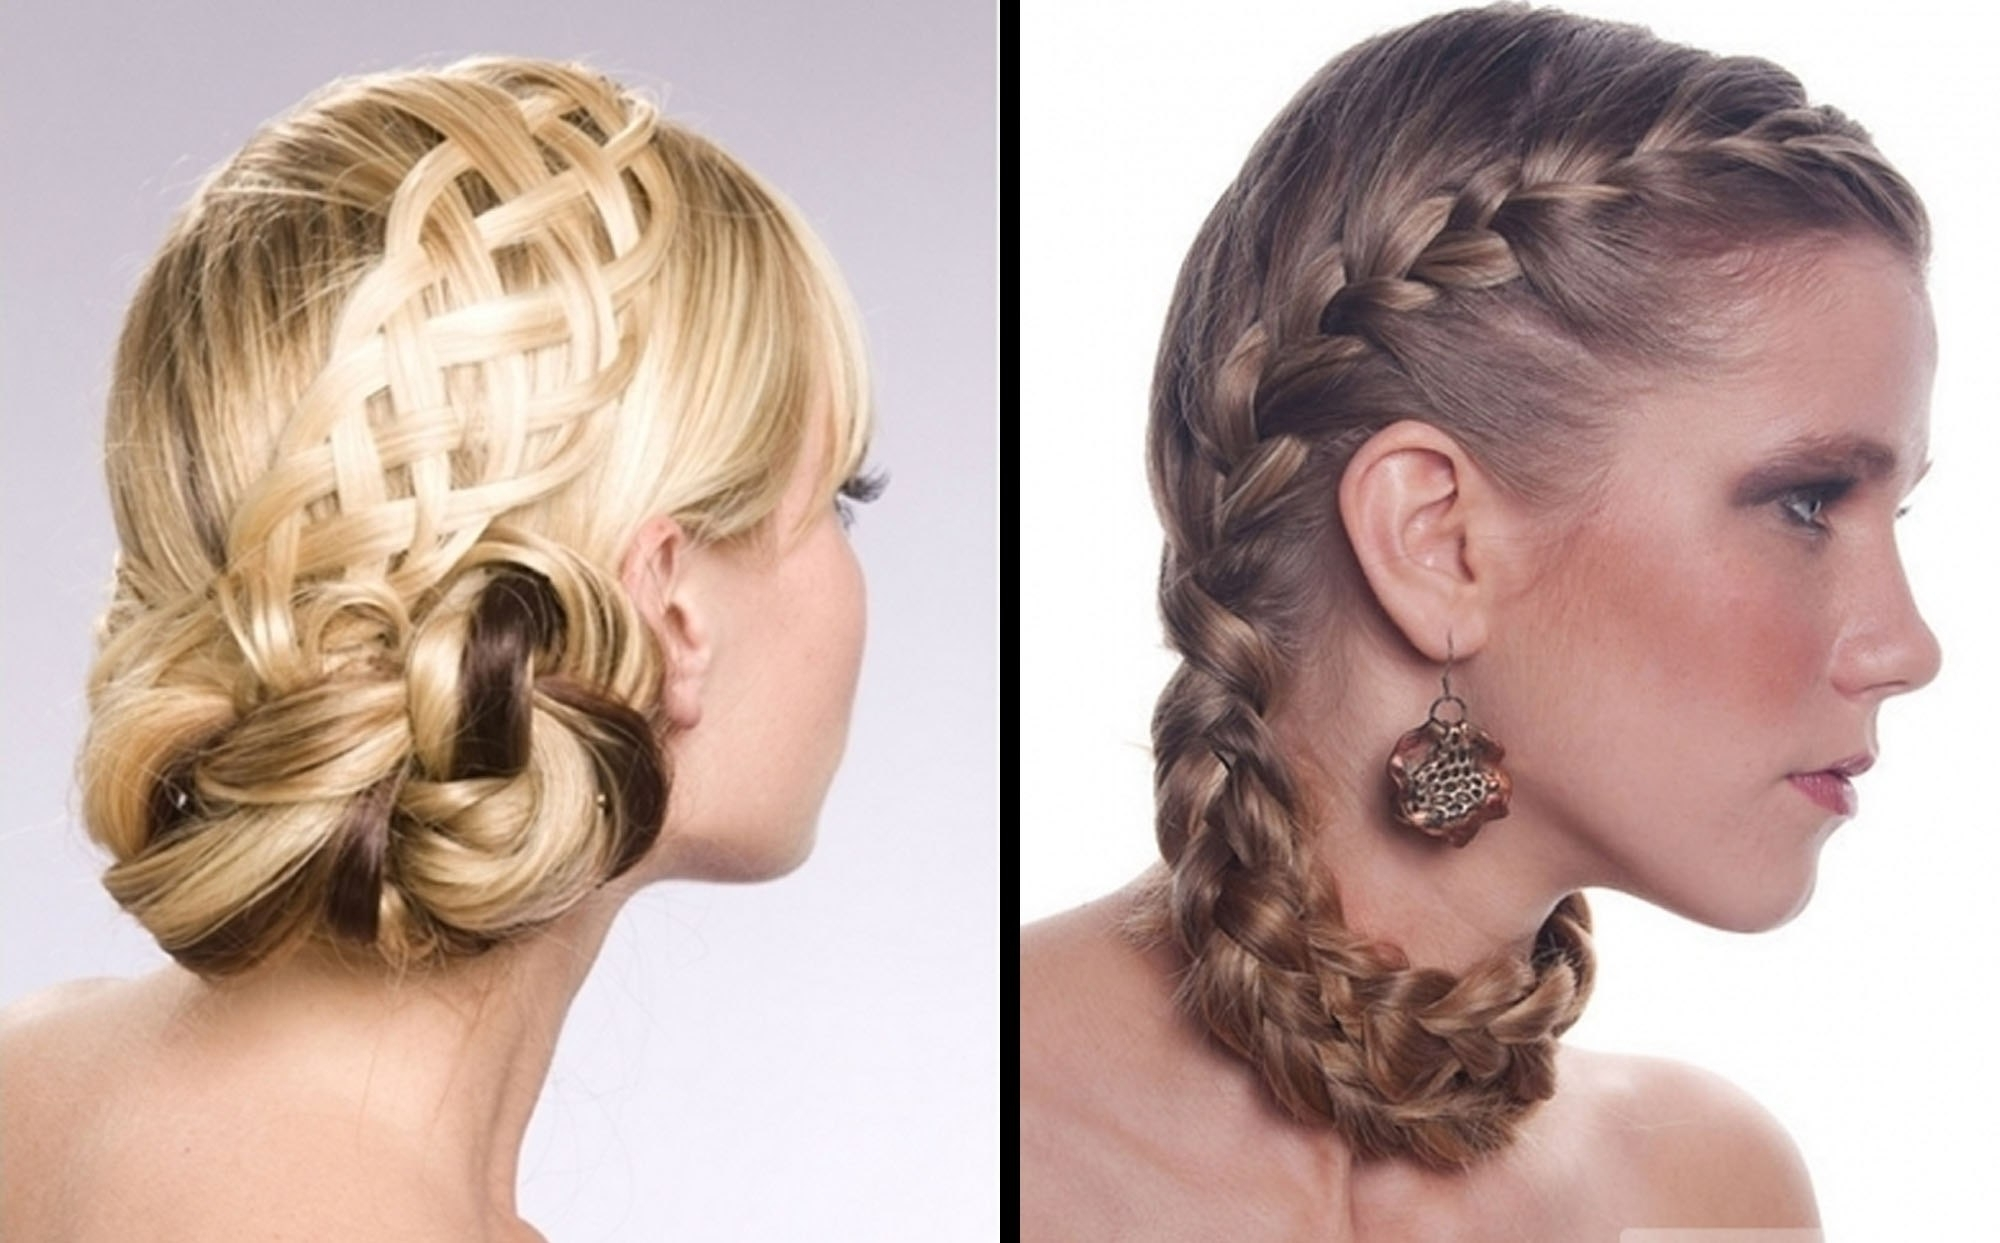 Hairstyles Prom For Short Hair Easy | Medium Hair Styles Ideas – 35491 Pertaining To Medium Long Hair Updo Hairstyles (View 9 of 15)